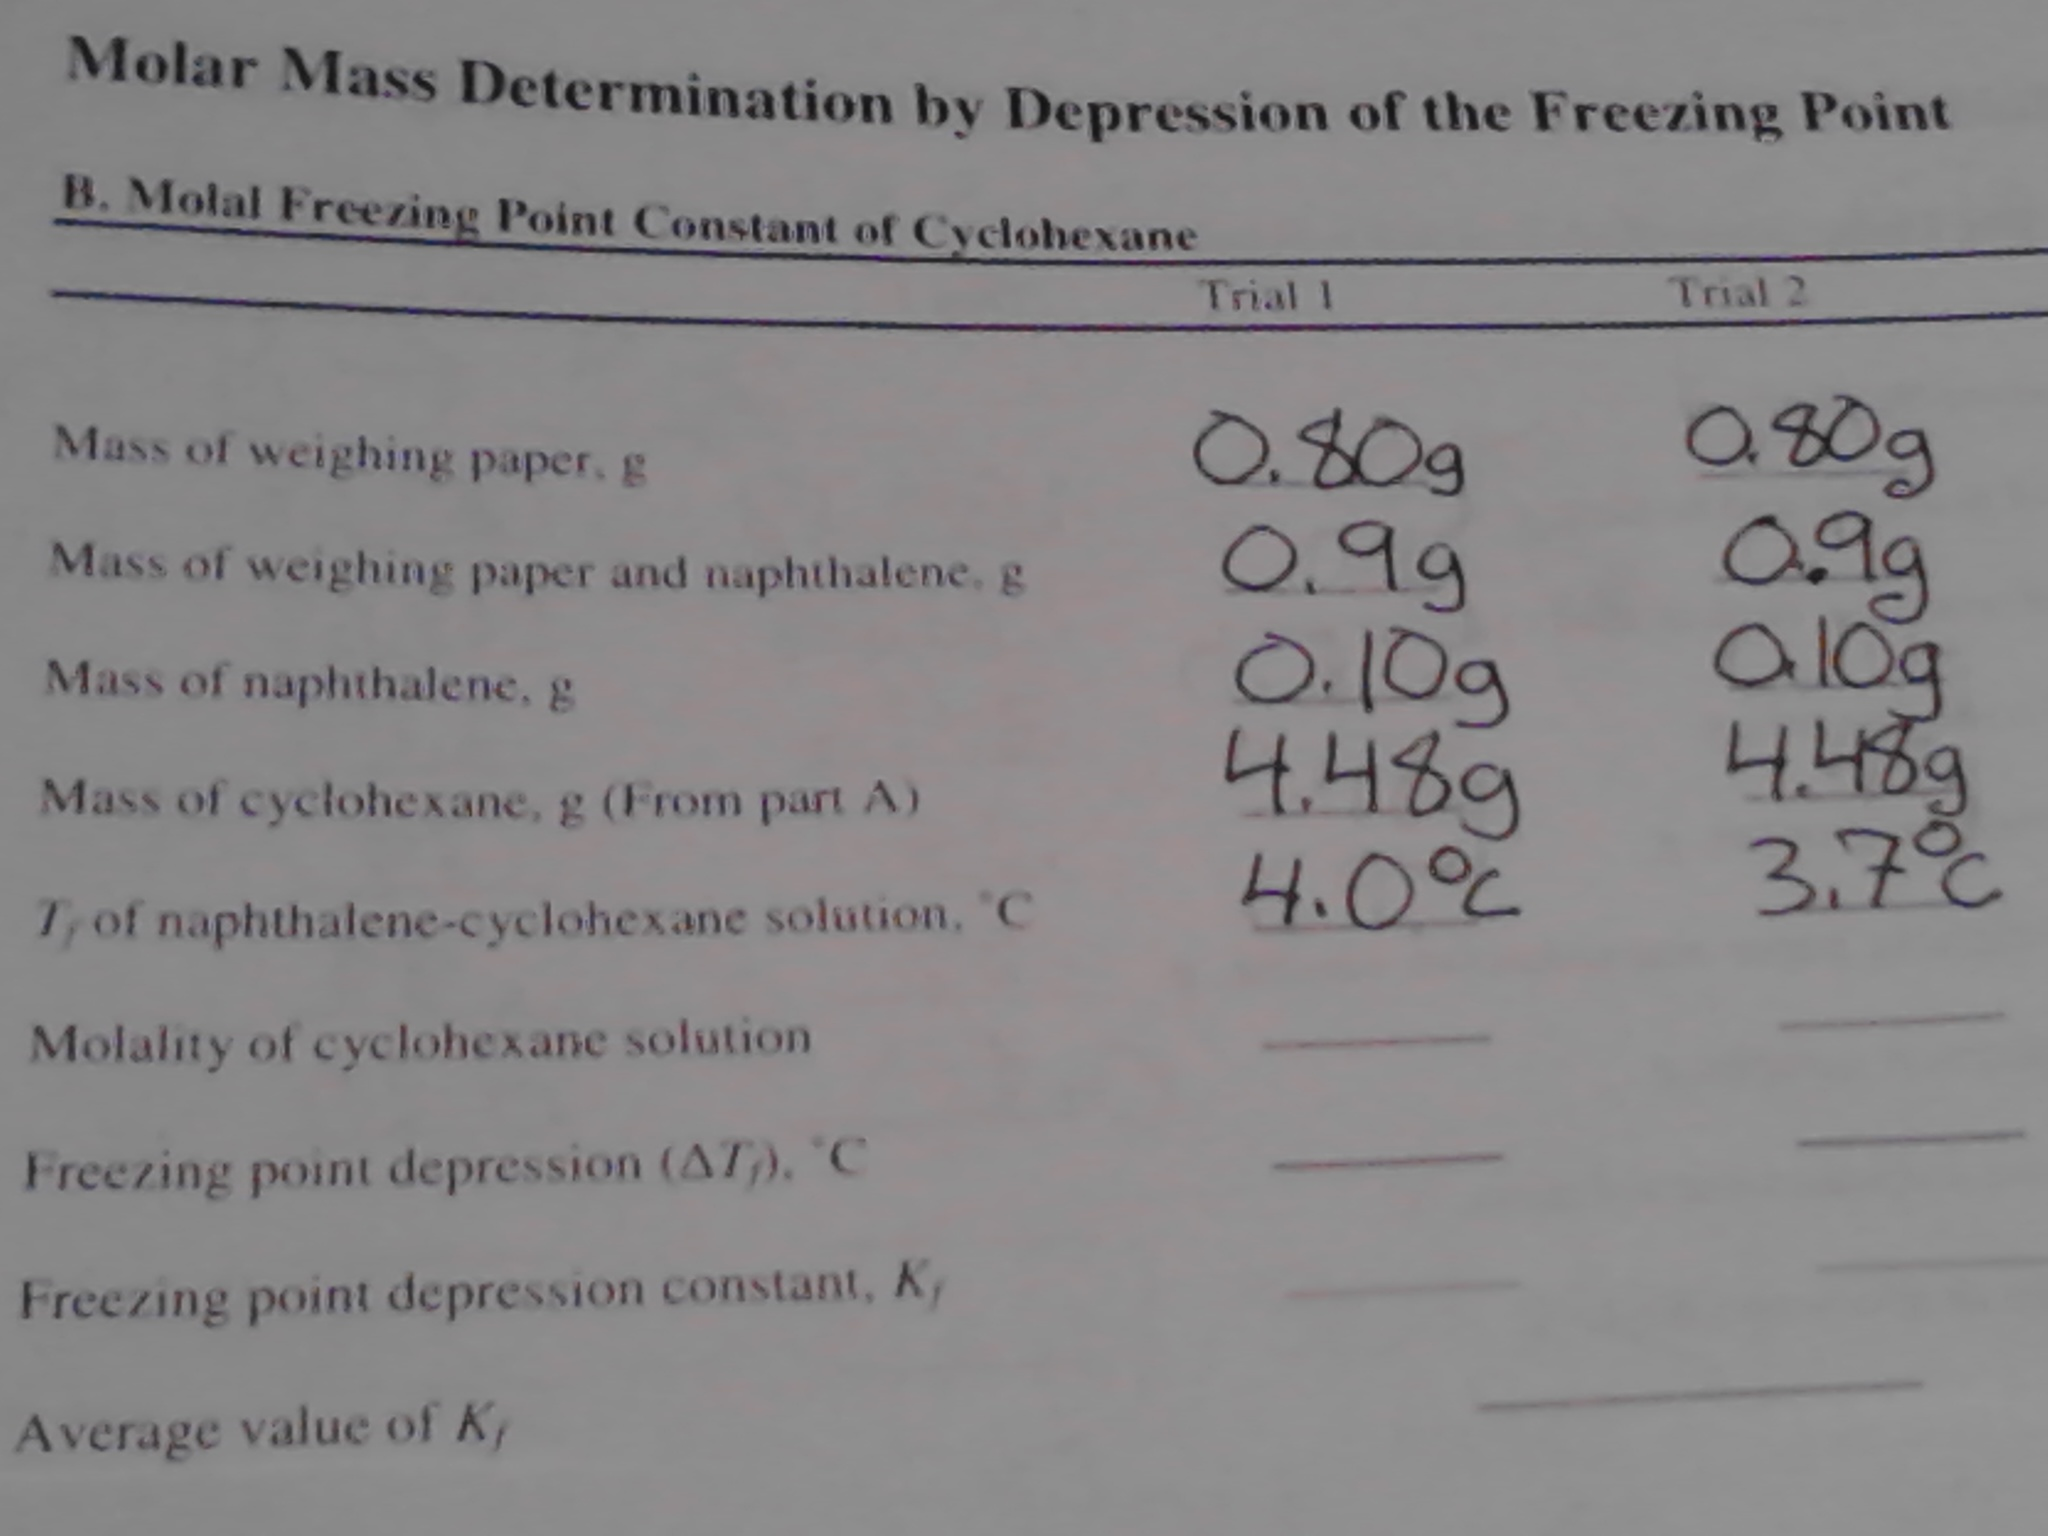 molecular mass by freezing point depression essay Lauric acid is a saturated medium-chain fatty acid with a 12-carbon backbonelauric acid is found naturally in various plant and animal fats and oils, and is a major component of coconut oil and palm kernel oil.